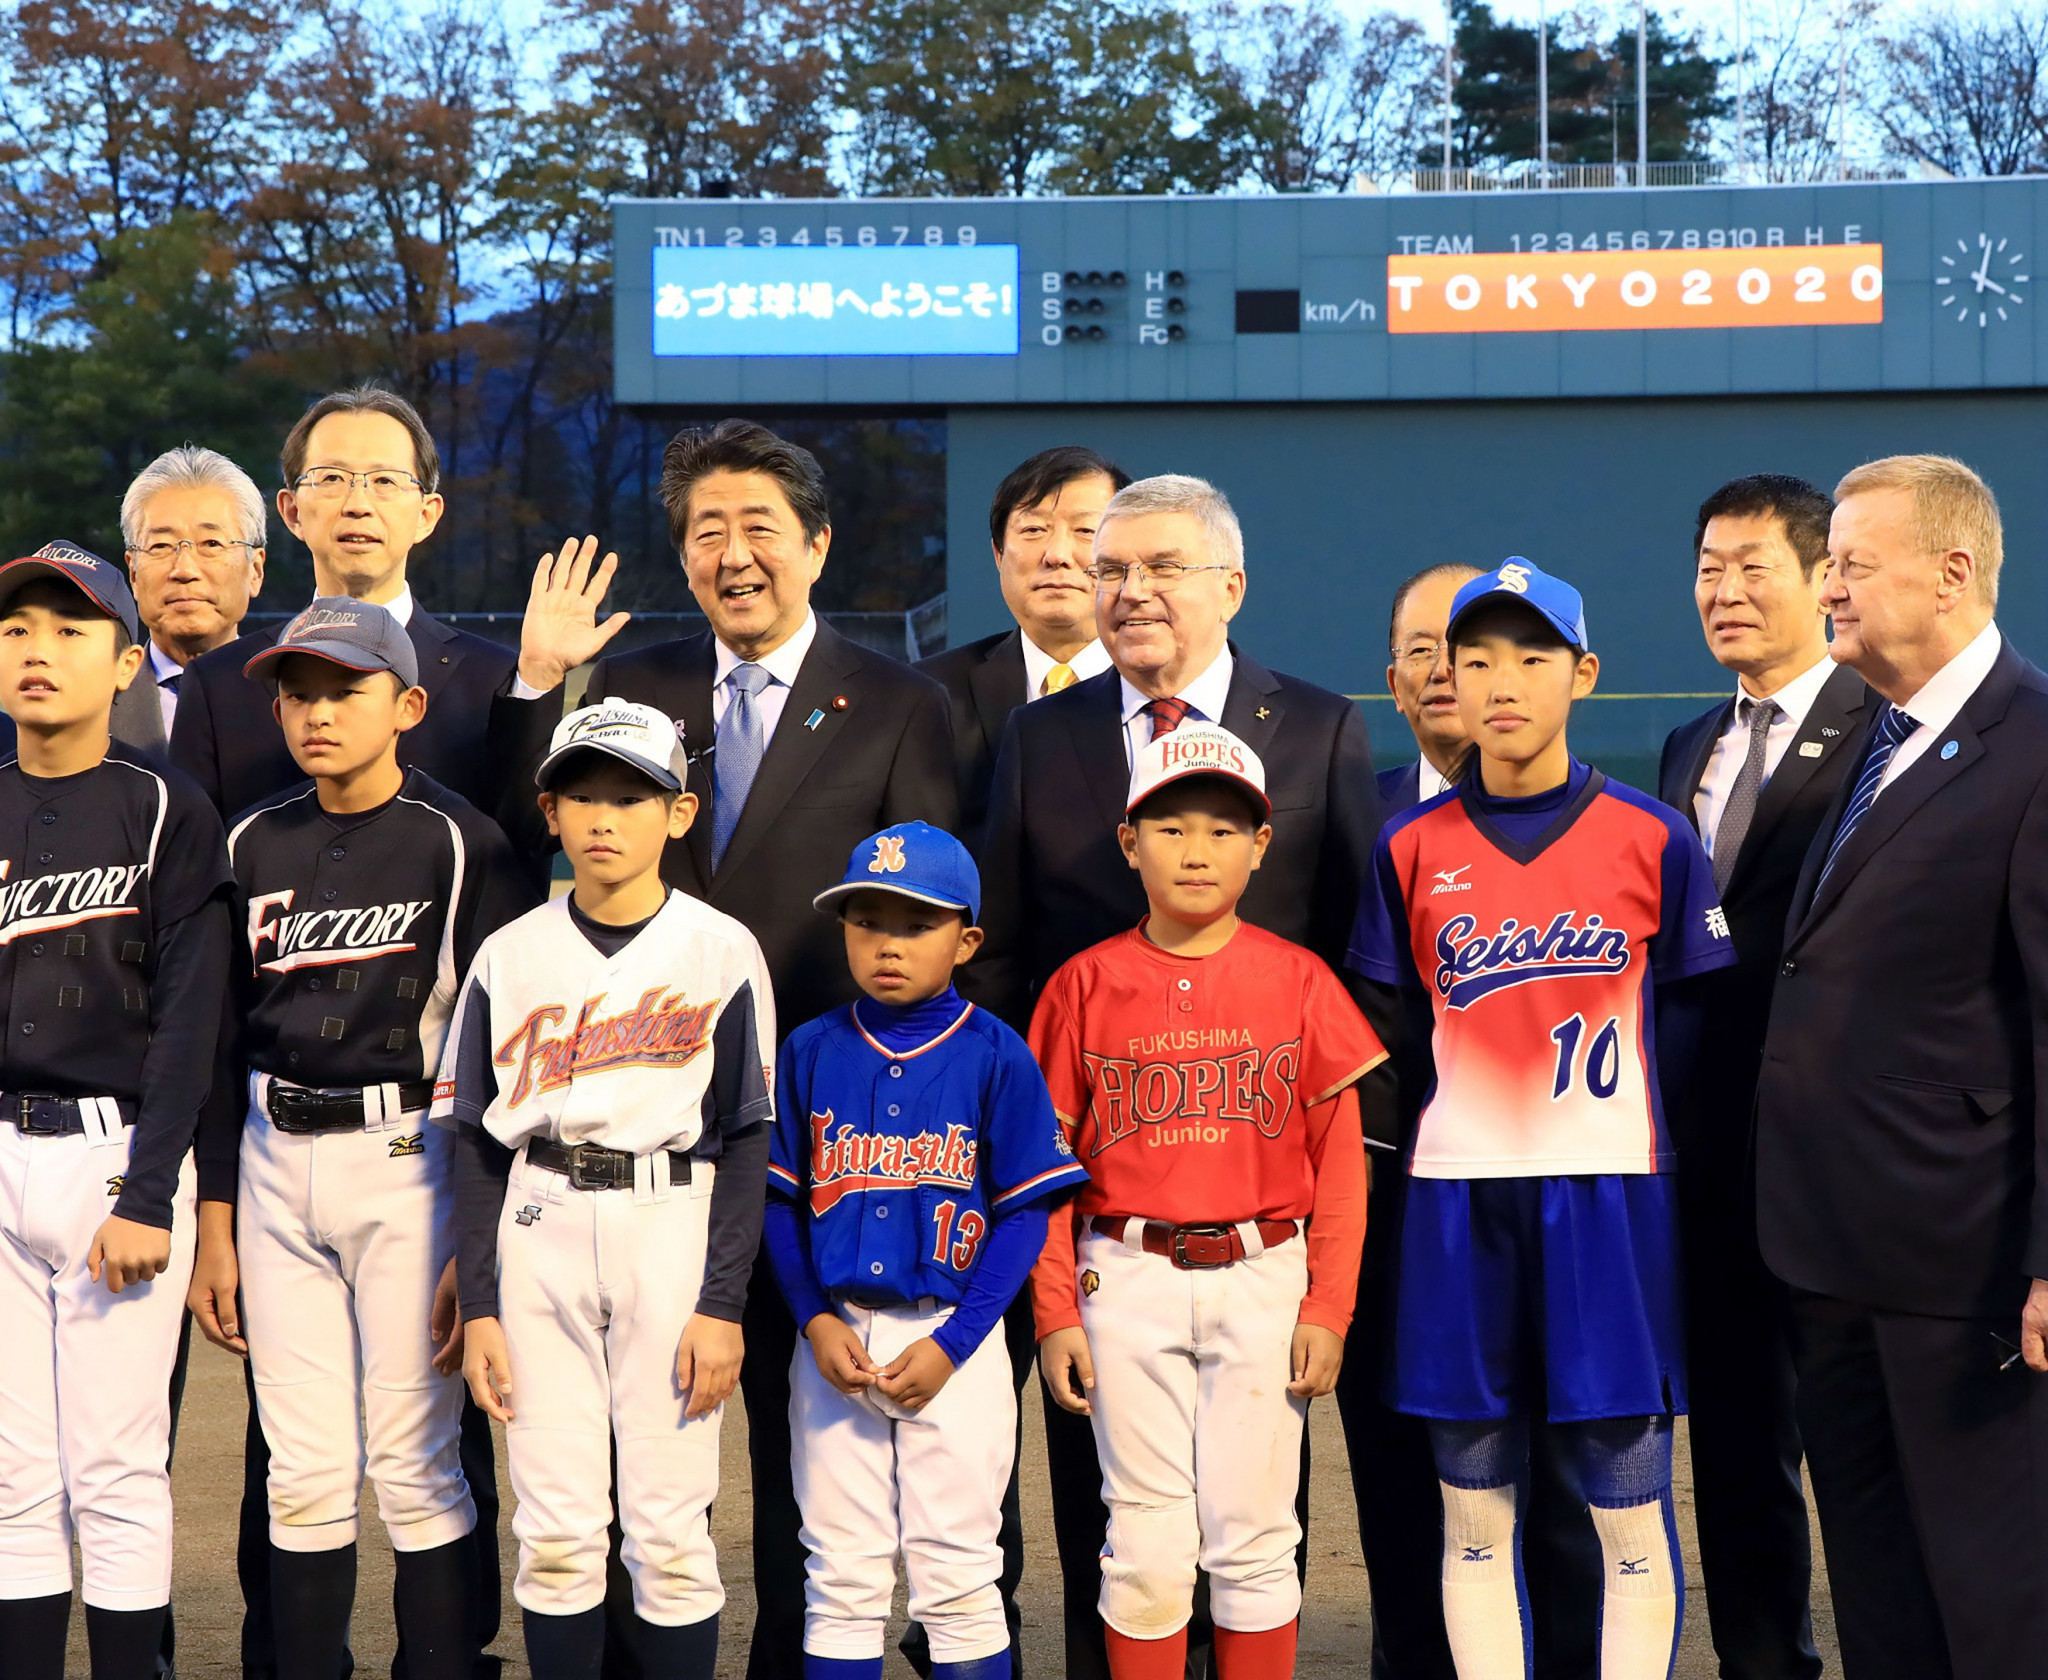 IOC President Thomas Bach and Japanese Prime Minster Shinzo Abe visited Fukushima last November and met some young baseball players from the area devastated by the earthquake and tsunami ©Getty Images